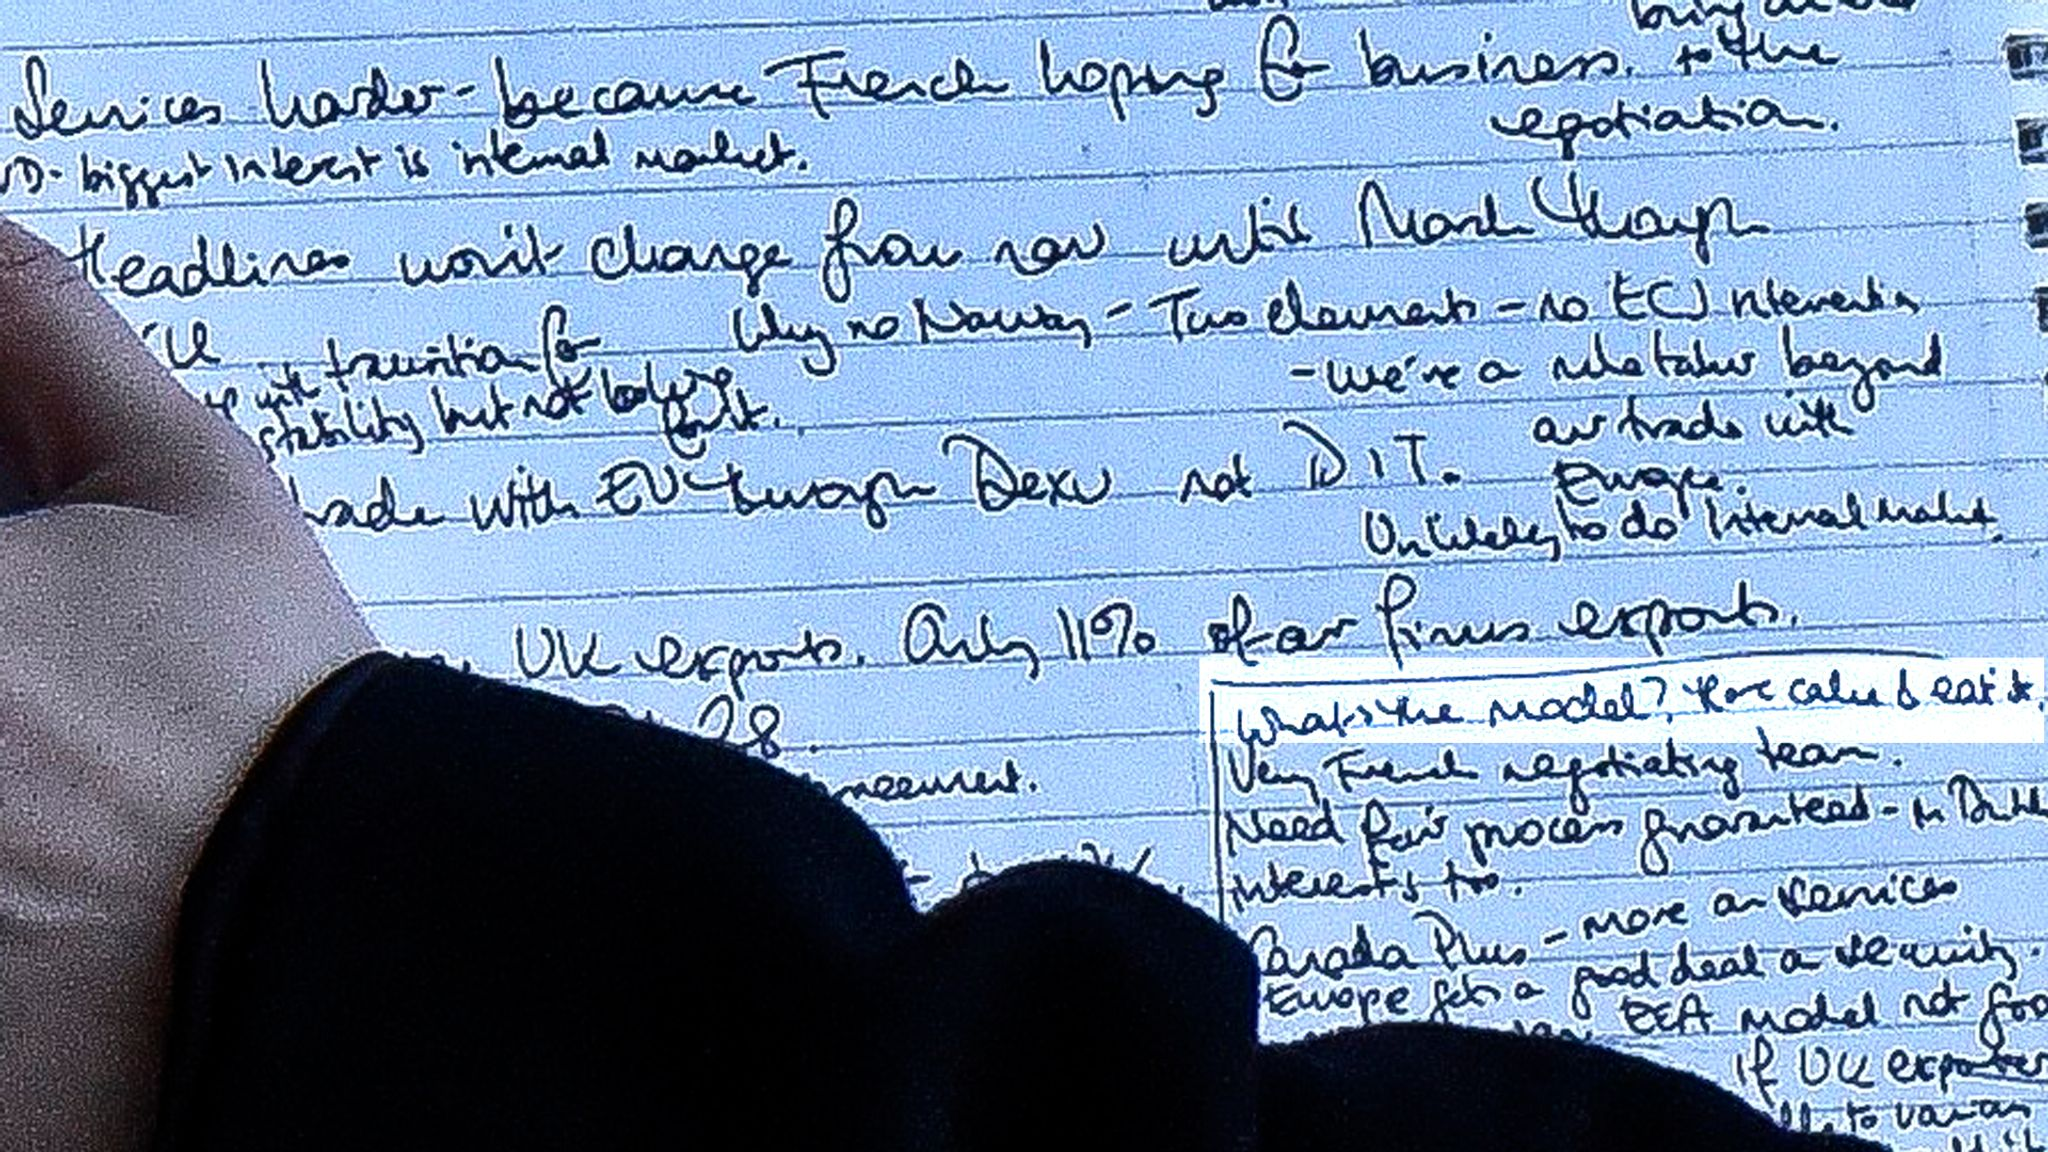 Handwritten notes with the text 'What's the strategy? Have cake & eat it.' highlighted.